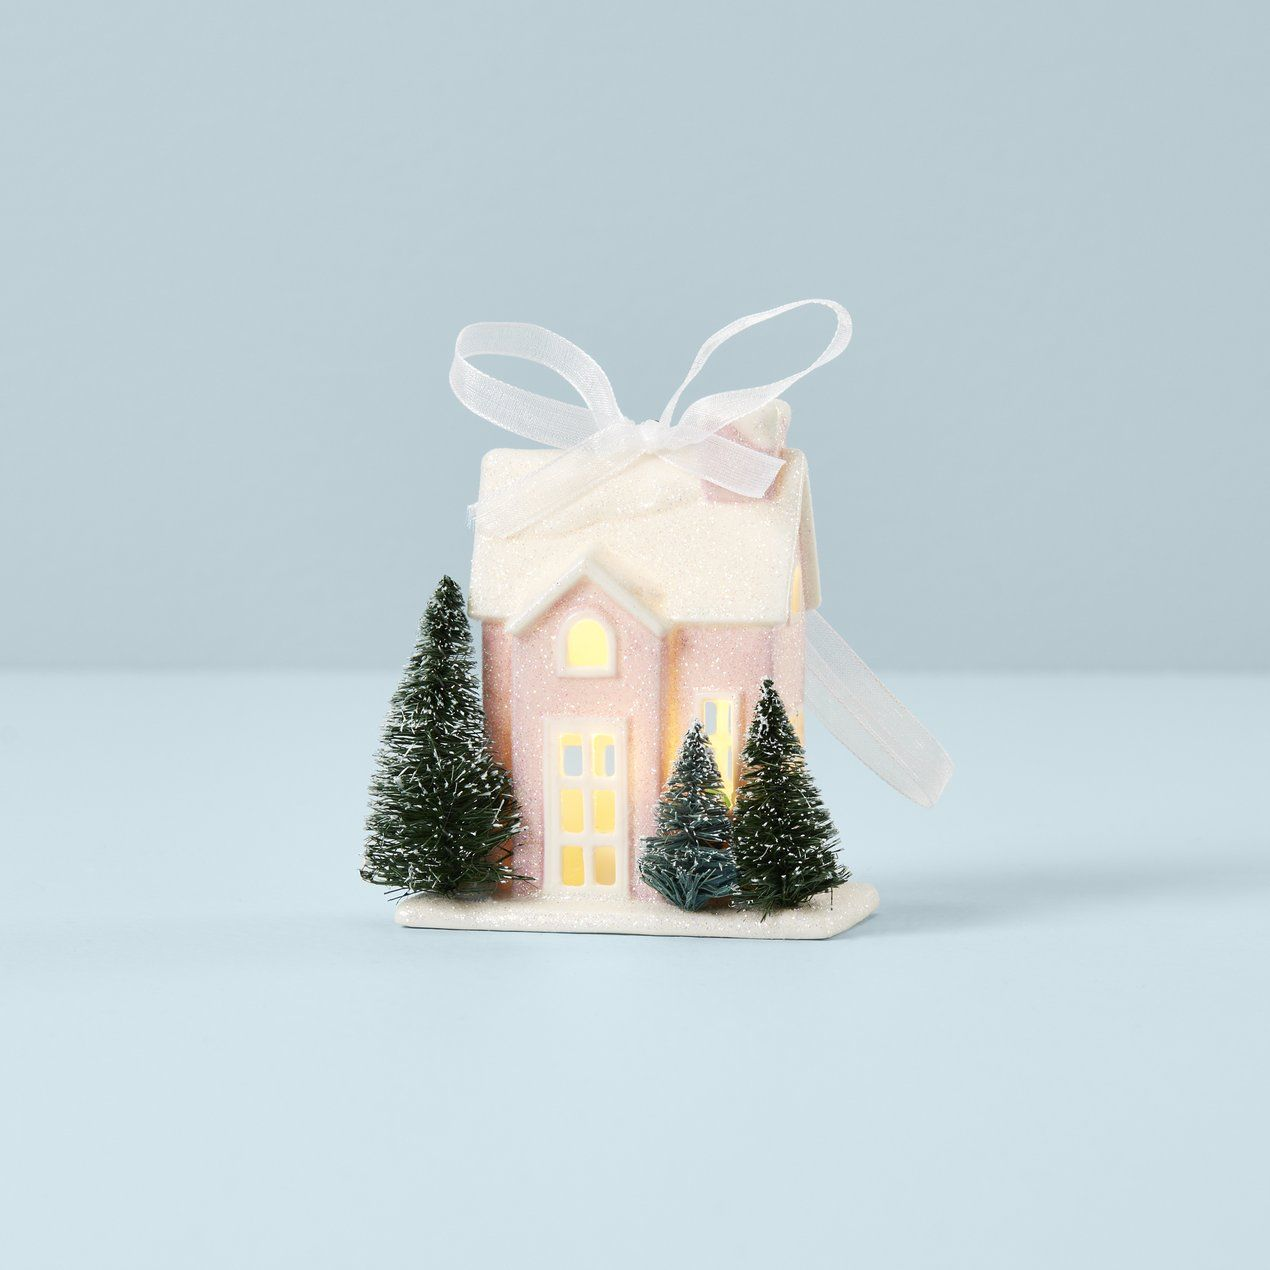 Lenox Babys First Christmas Ornament 2021 Light Up Bungalow House Ornament In 2021 House Ornaments Pink Ornament How To Make Ornaments